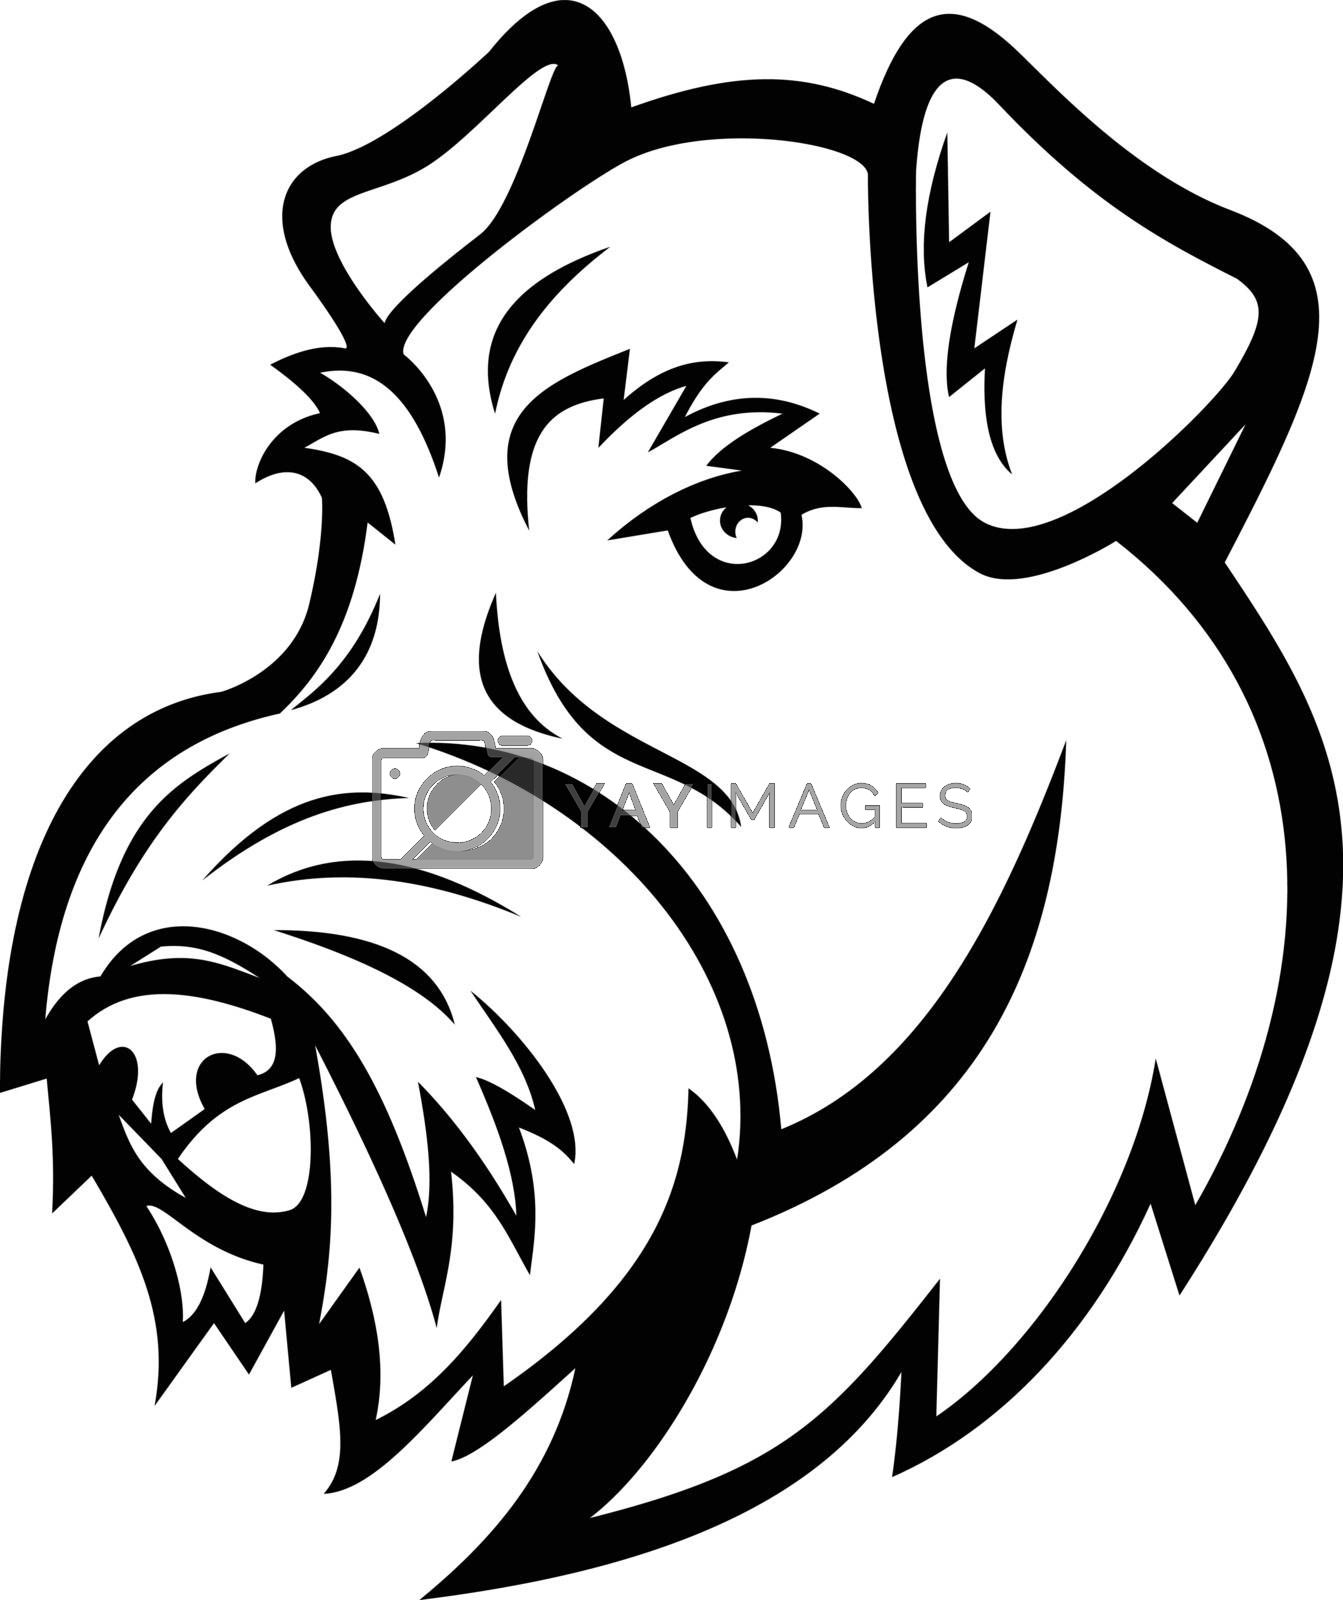 Mascot illustration of head of an Airedale Terrier, Bingley Terrier or Waterside Terrier, a dog breed of terrier type viewed from front isolated background in retro black and white style.